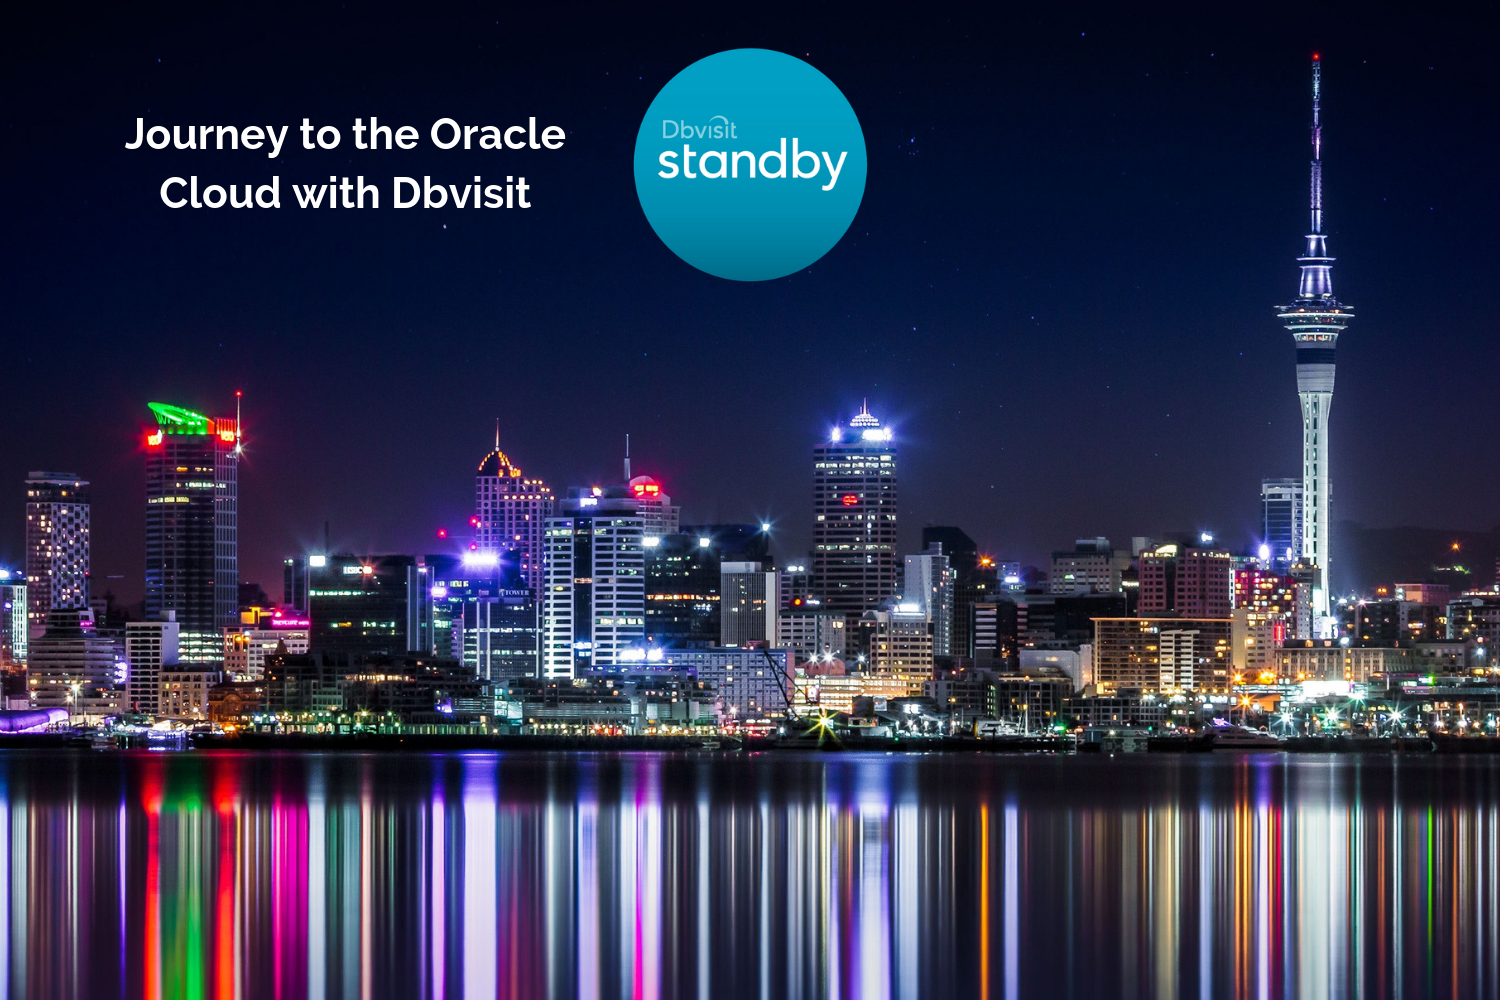 Journey to the Oracle Cloud with Dbvisit